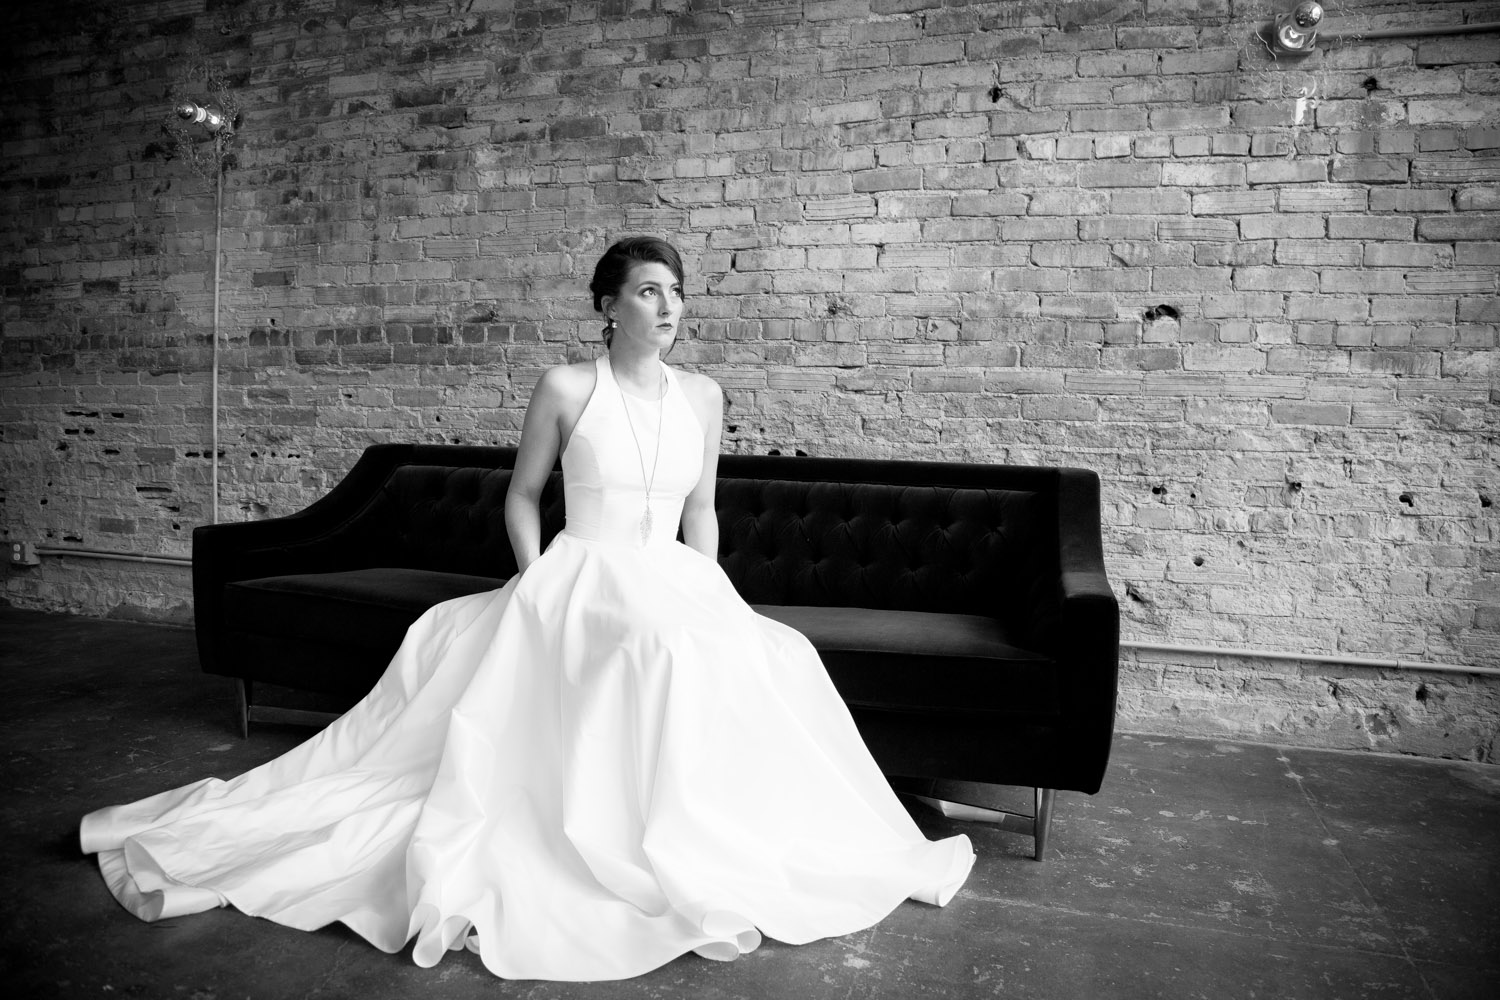 08-bride-halter-bridal-gown-black-and-white-brick-wall-loring-social-minneapolis-mahonen-photography.jpg